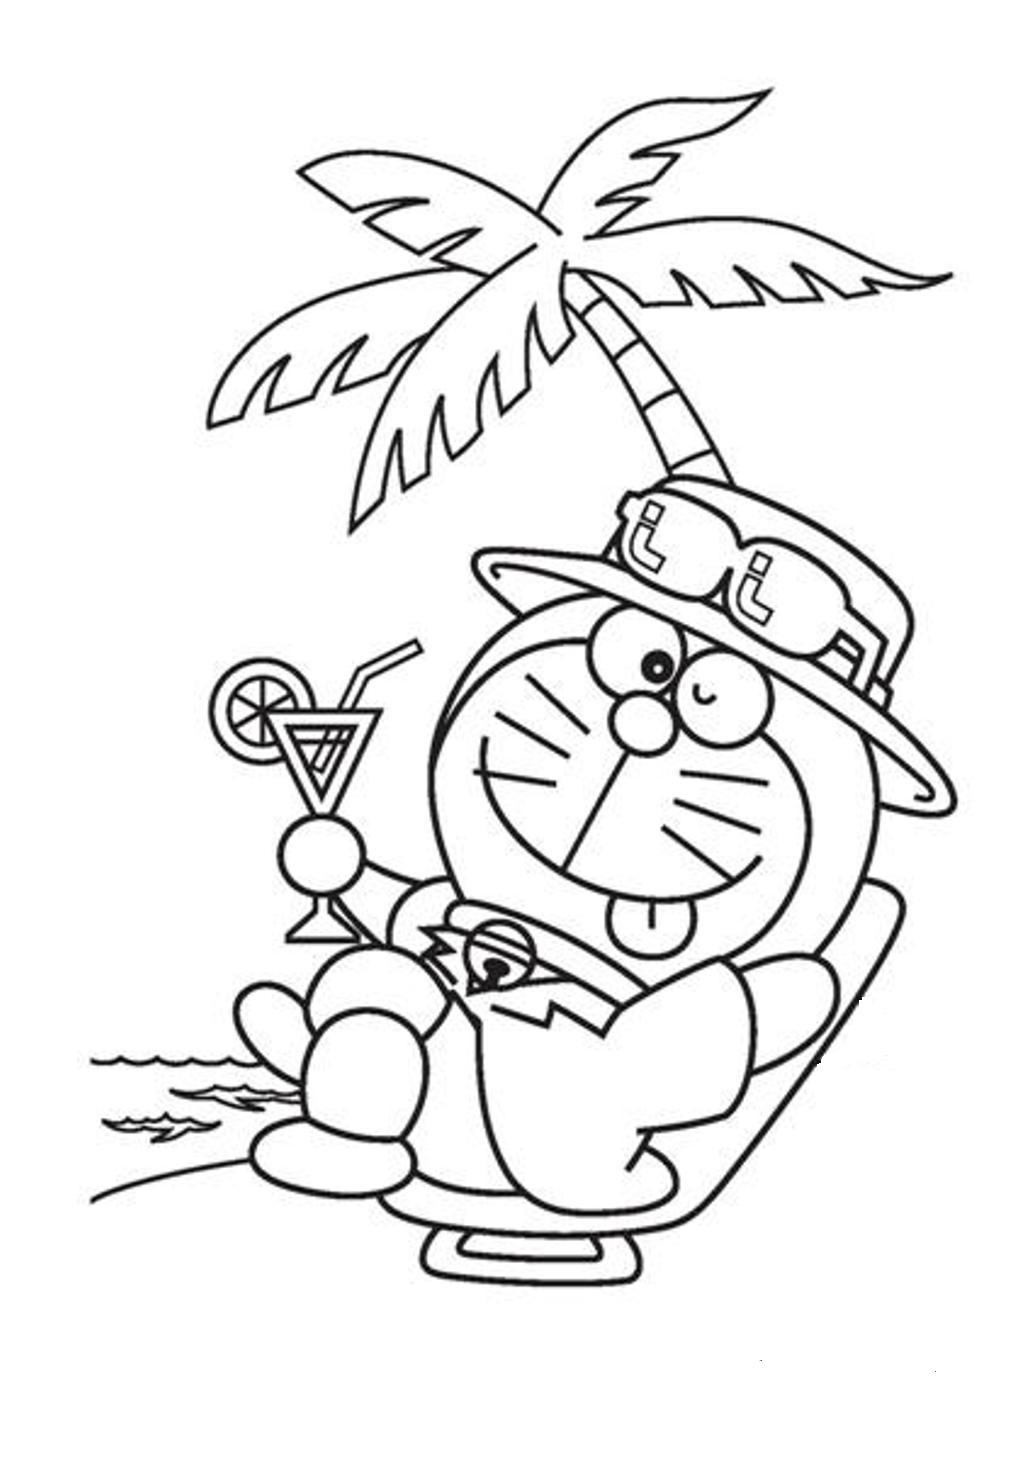 doraemon coloring pages - Doraemon Colouring Book